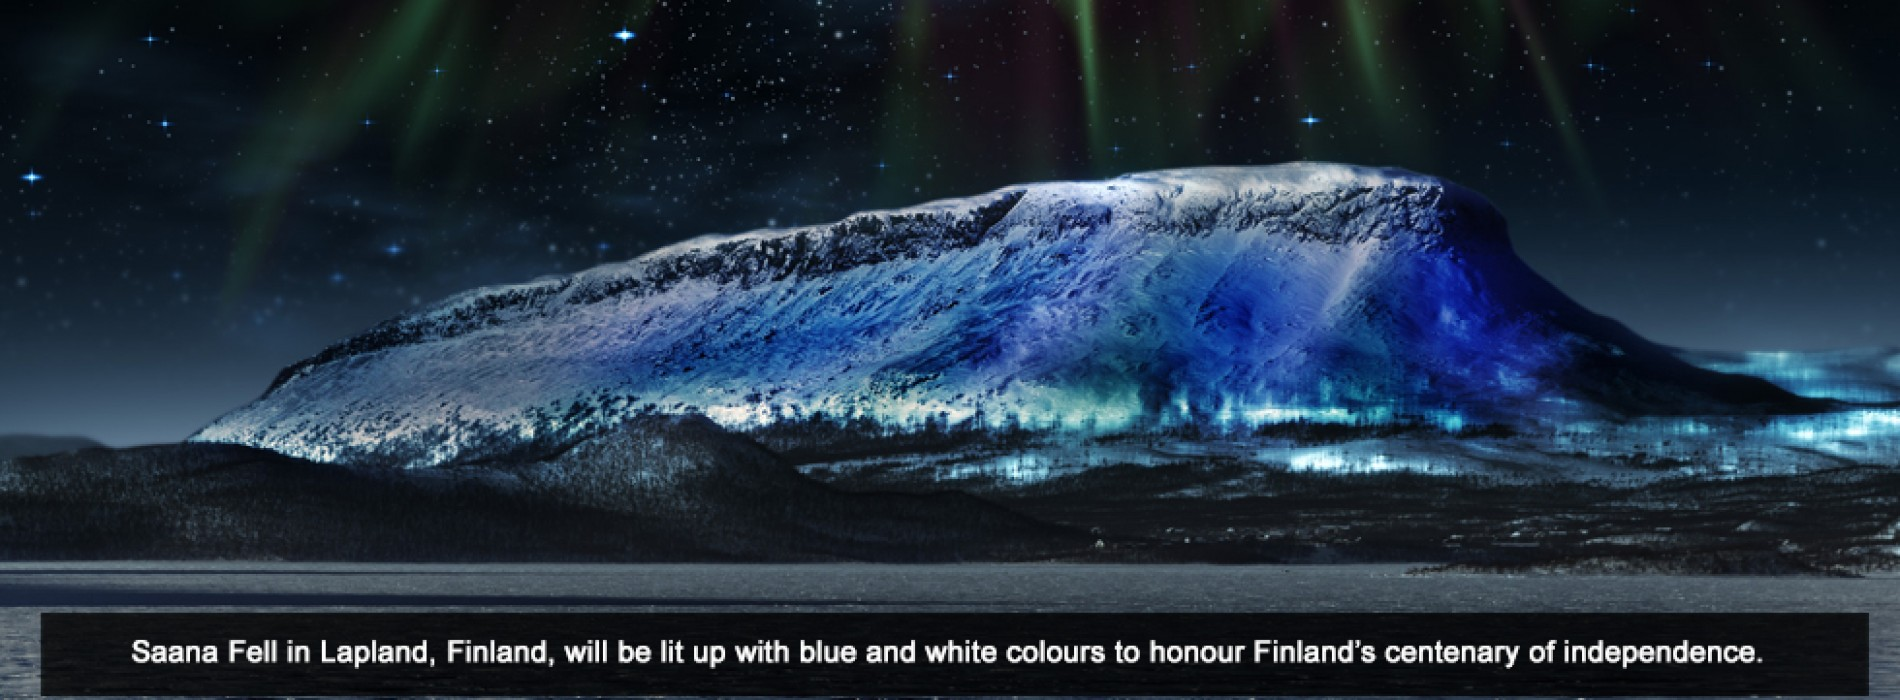 Finland's centenary of independence is being celebrated in an epic way throughout the world